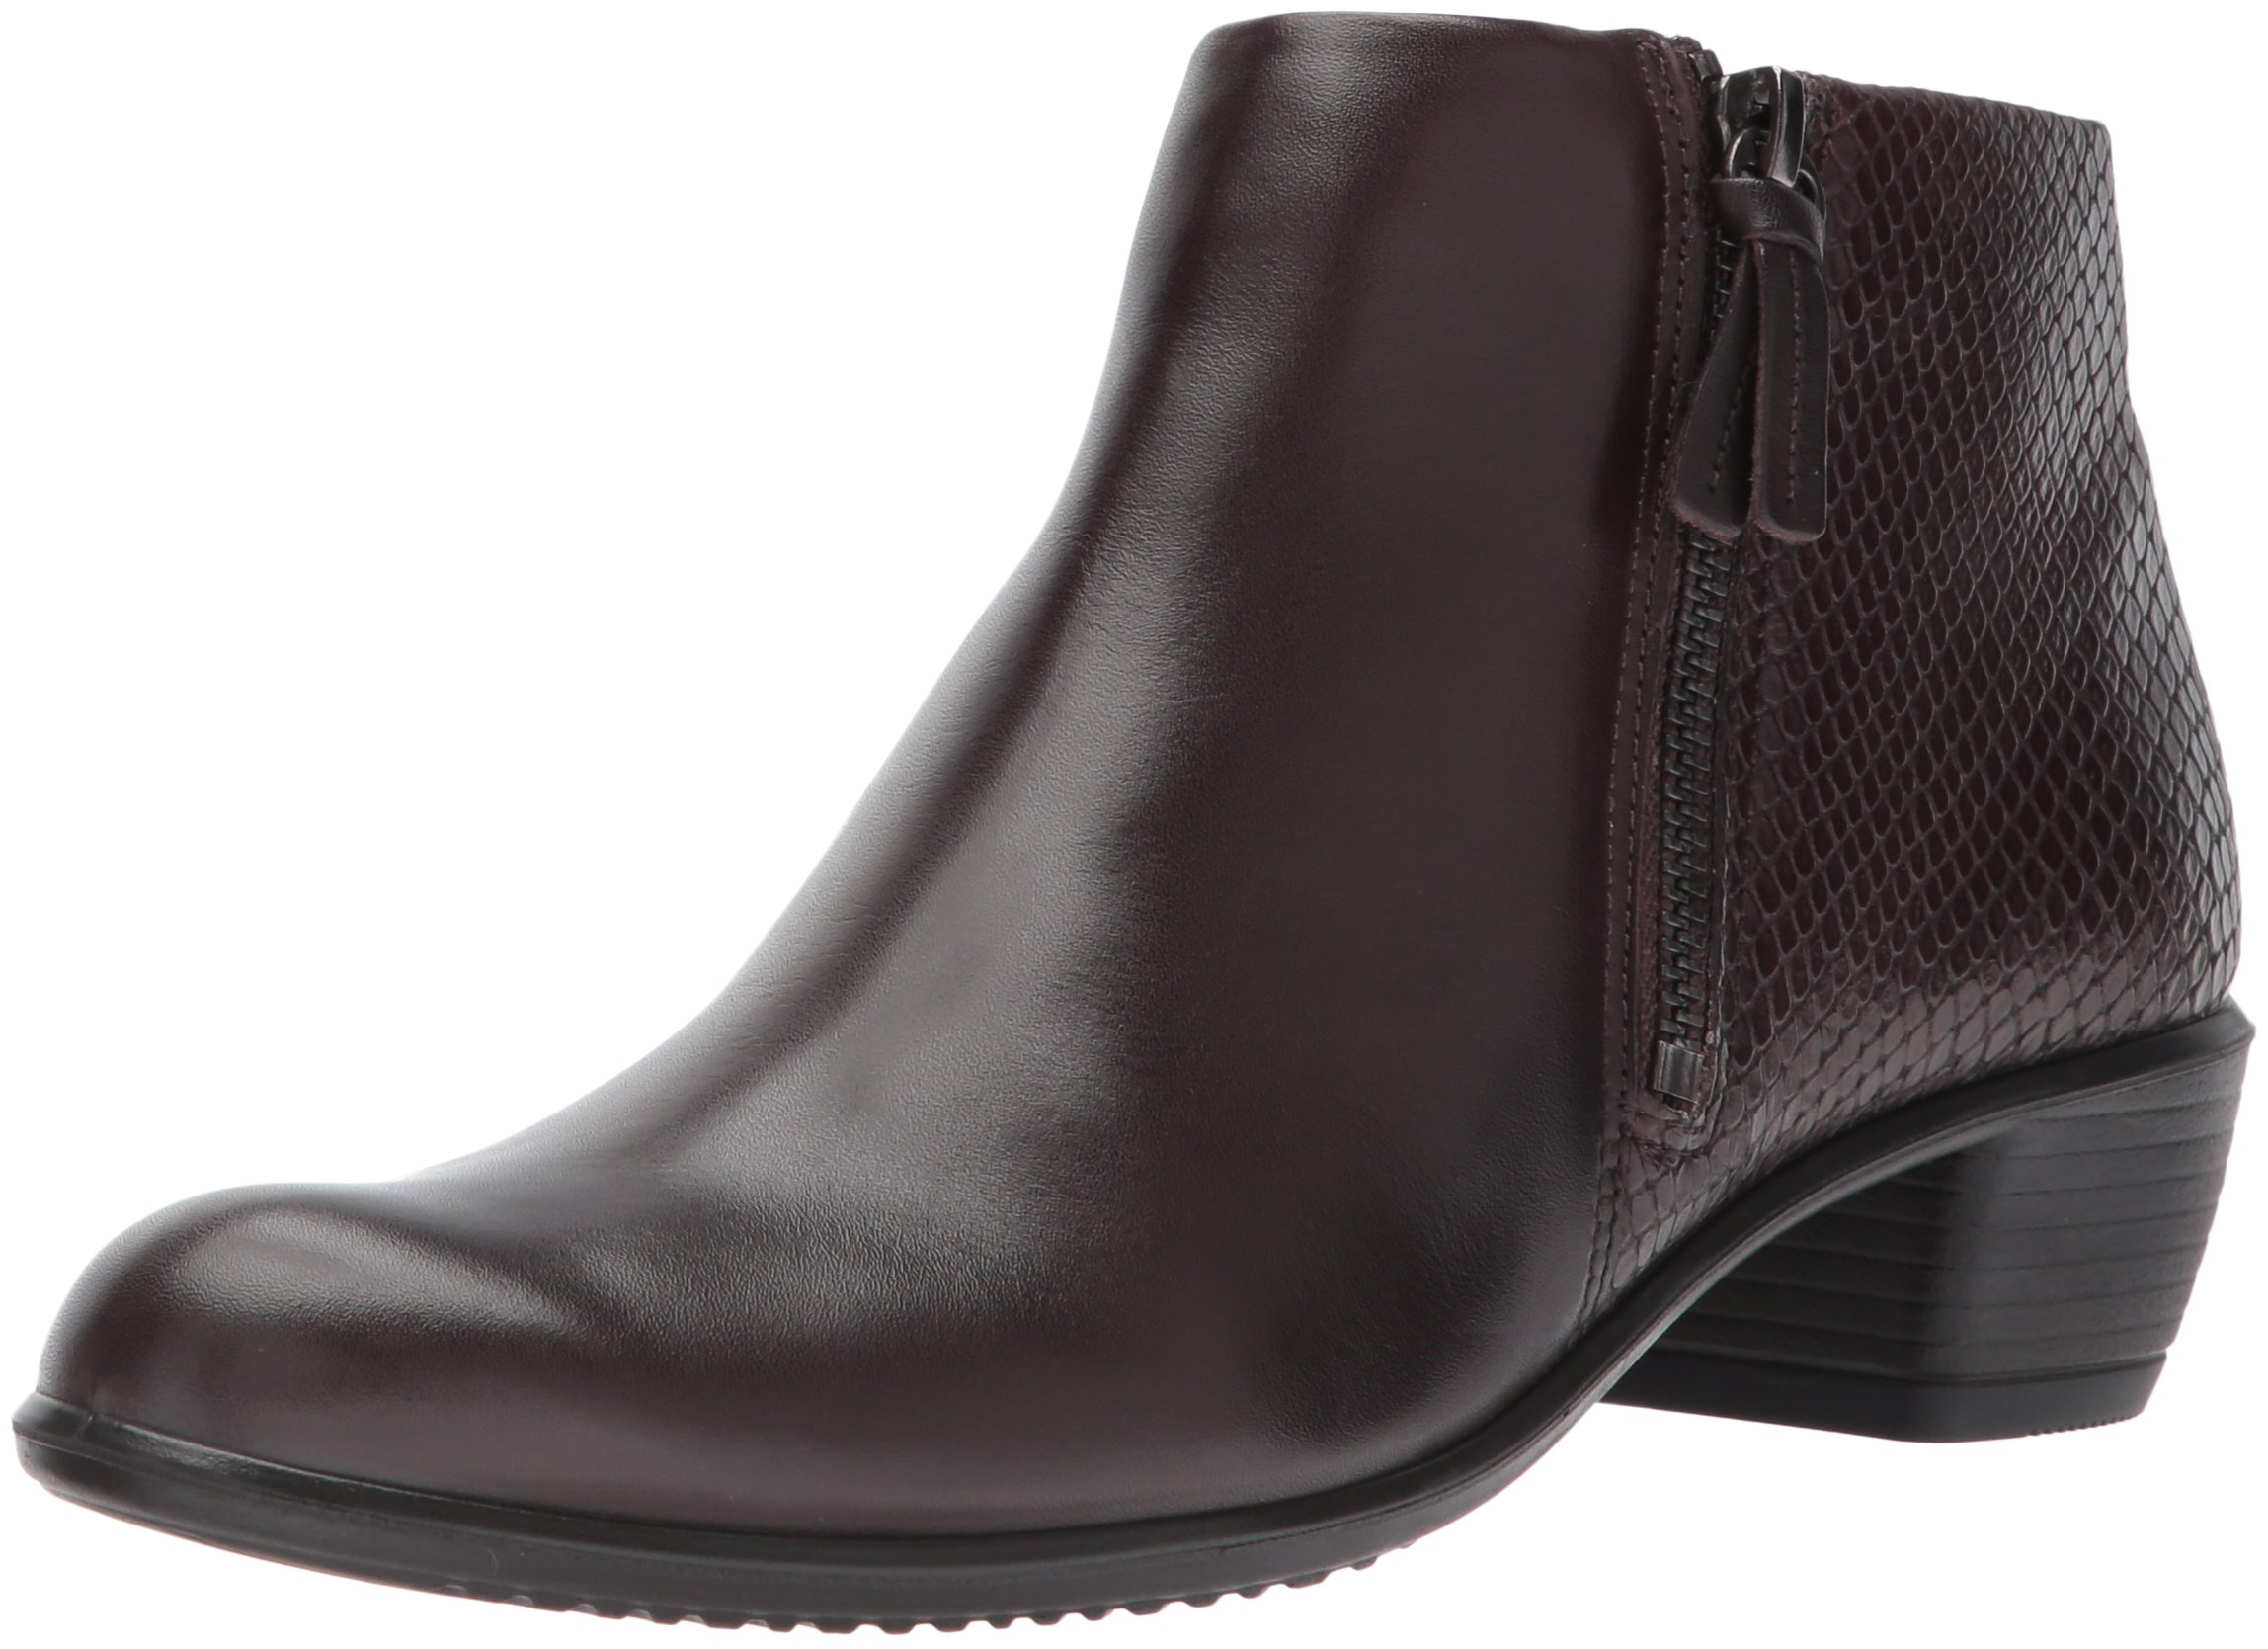 ECCO Women's Women's Touch 35 Ankle Bootie, Coffee/Coffee, 38 EU/7-7.5 US